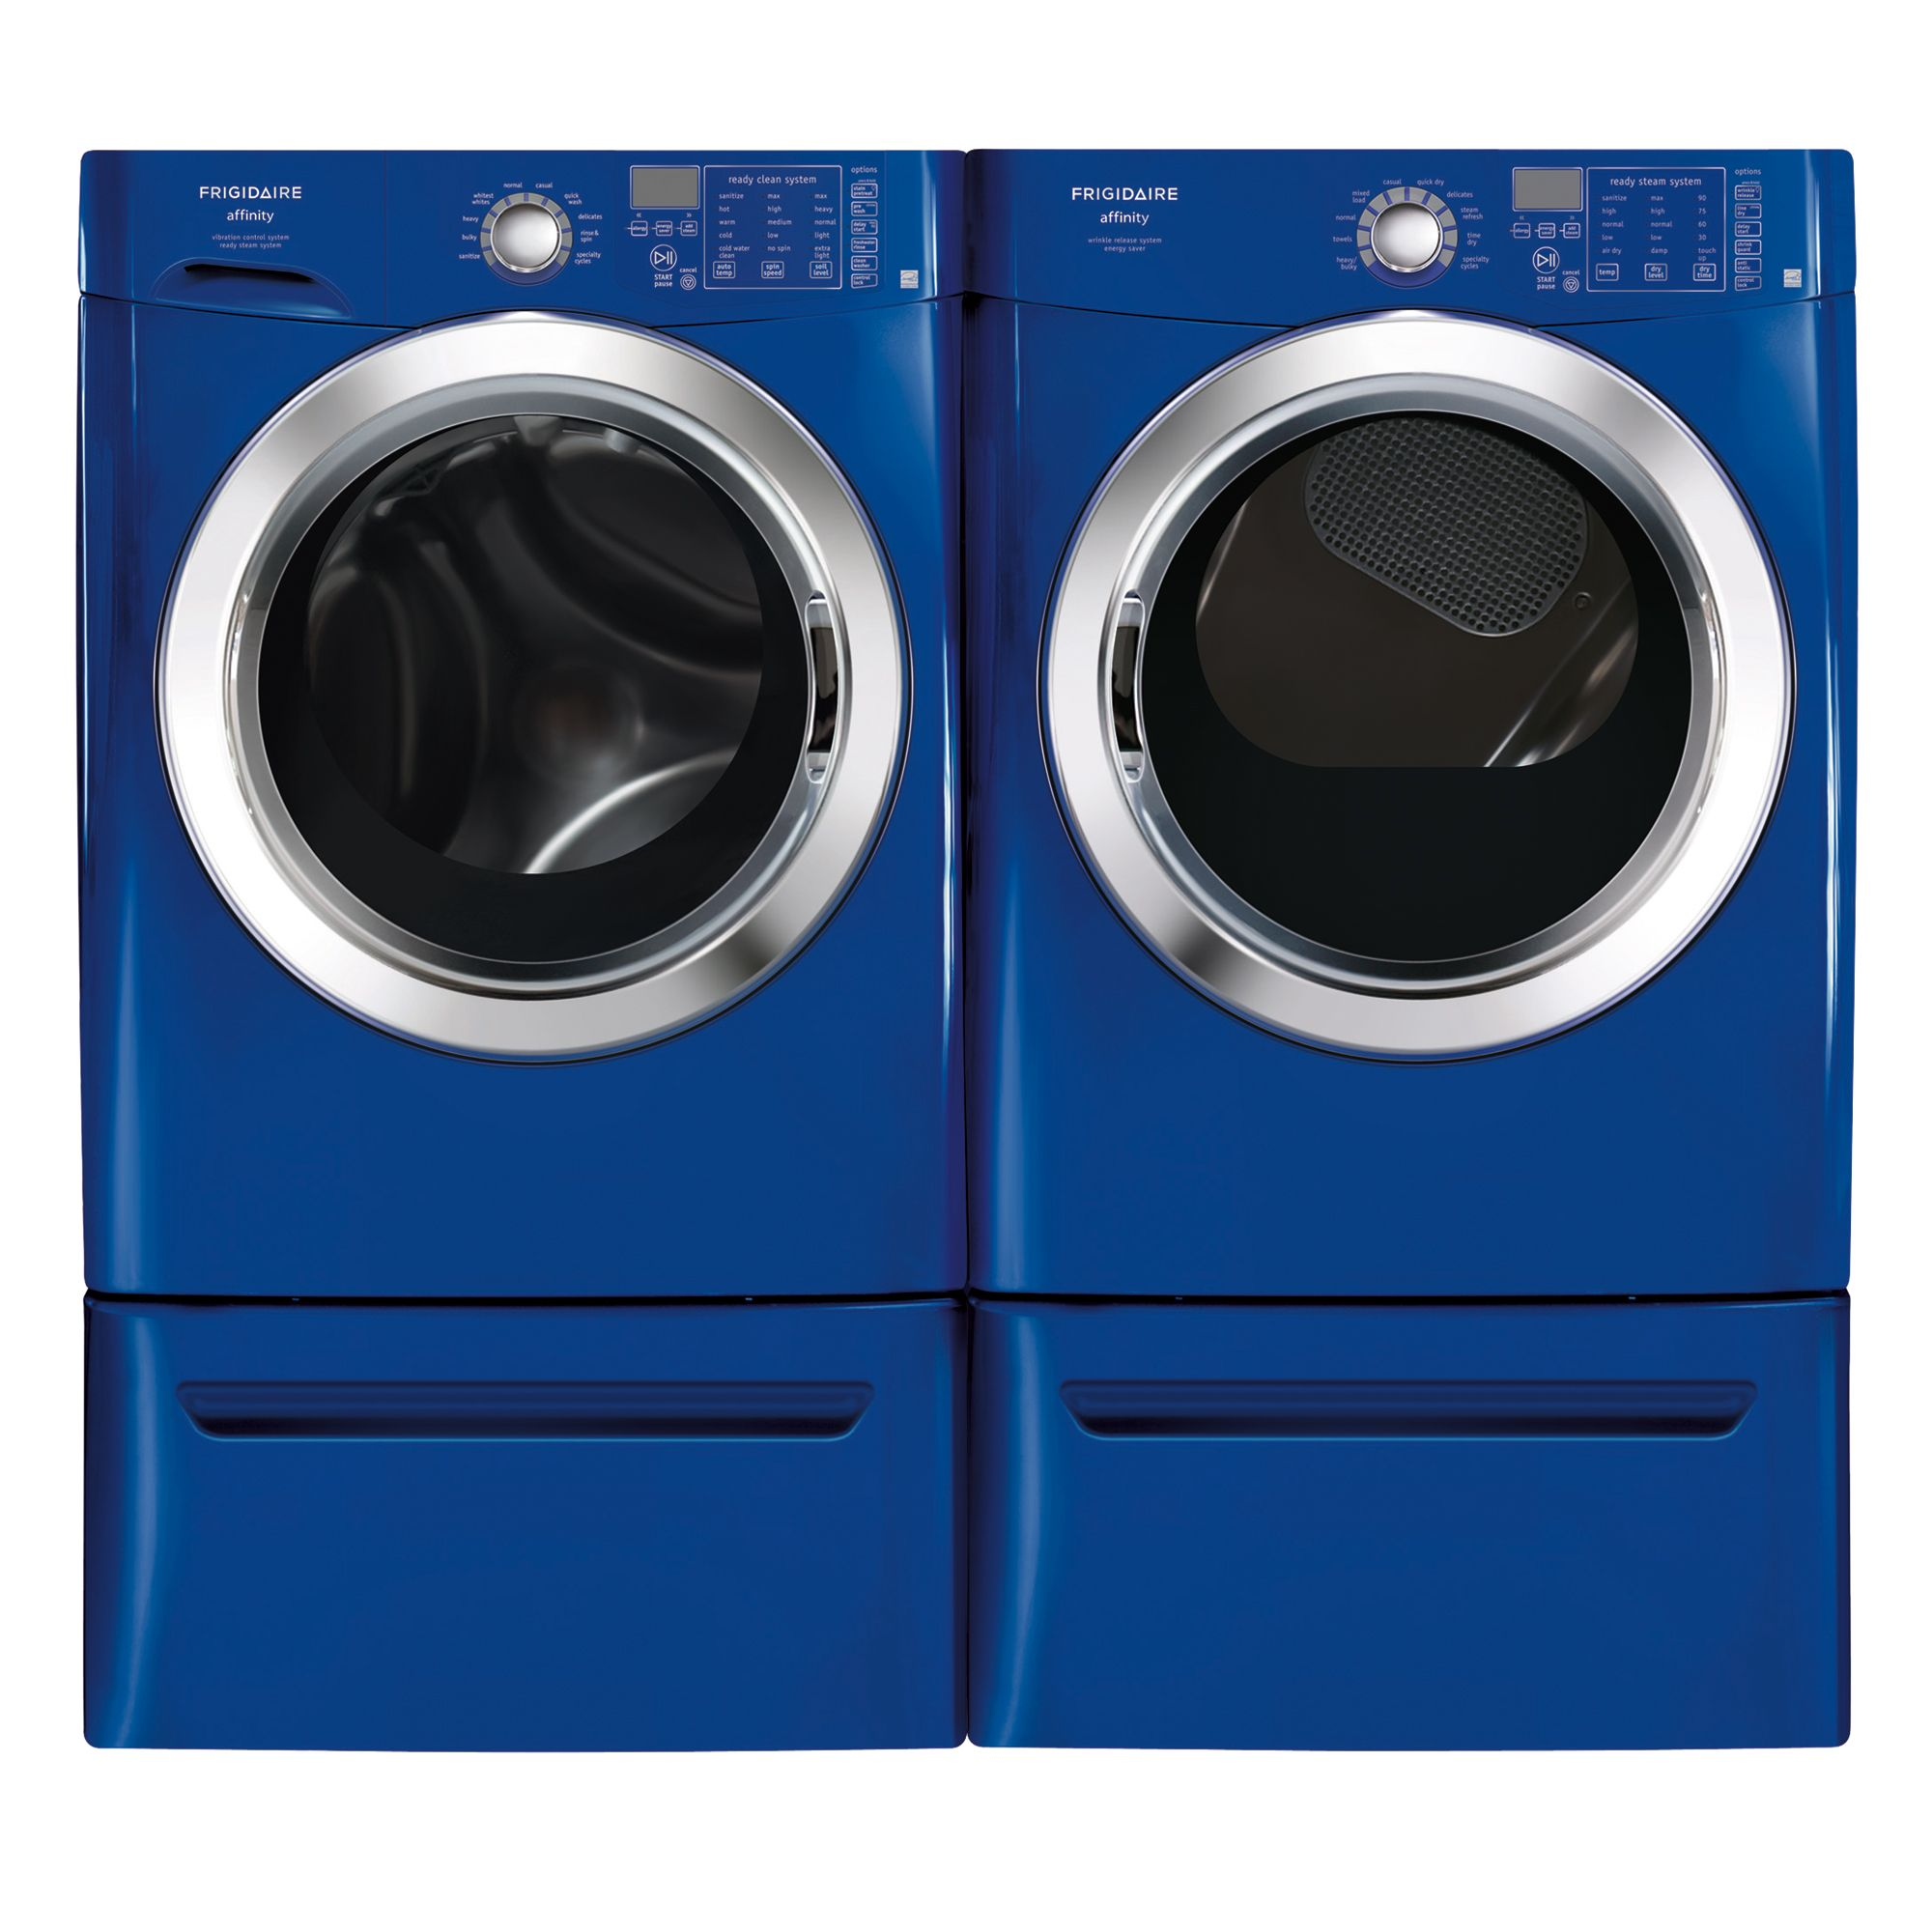 Frigidaire Affinity 3.8 cu. ft. Front-Load Steam Washer (FAFS4474LN)